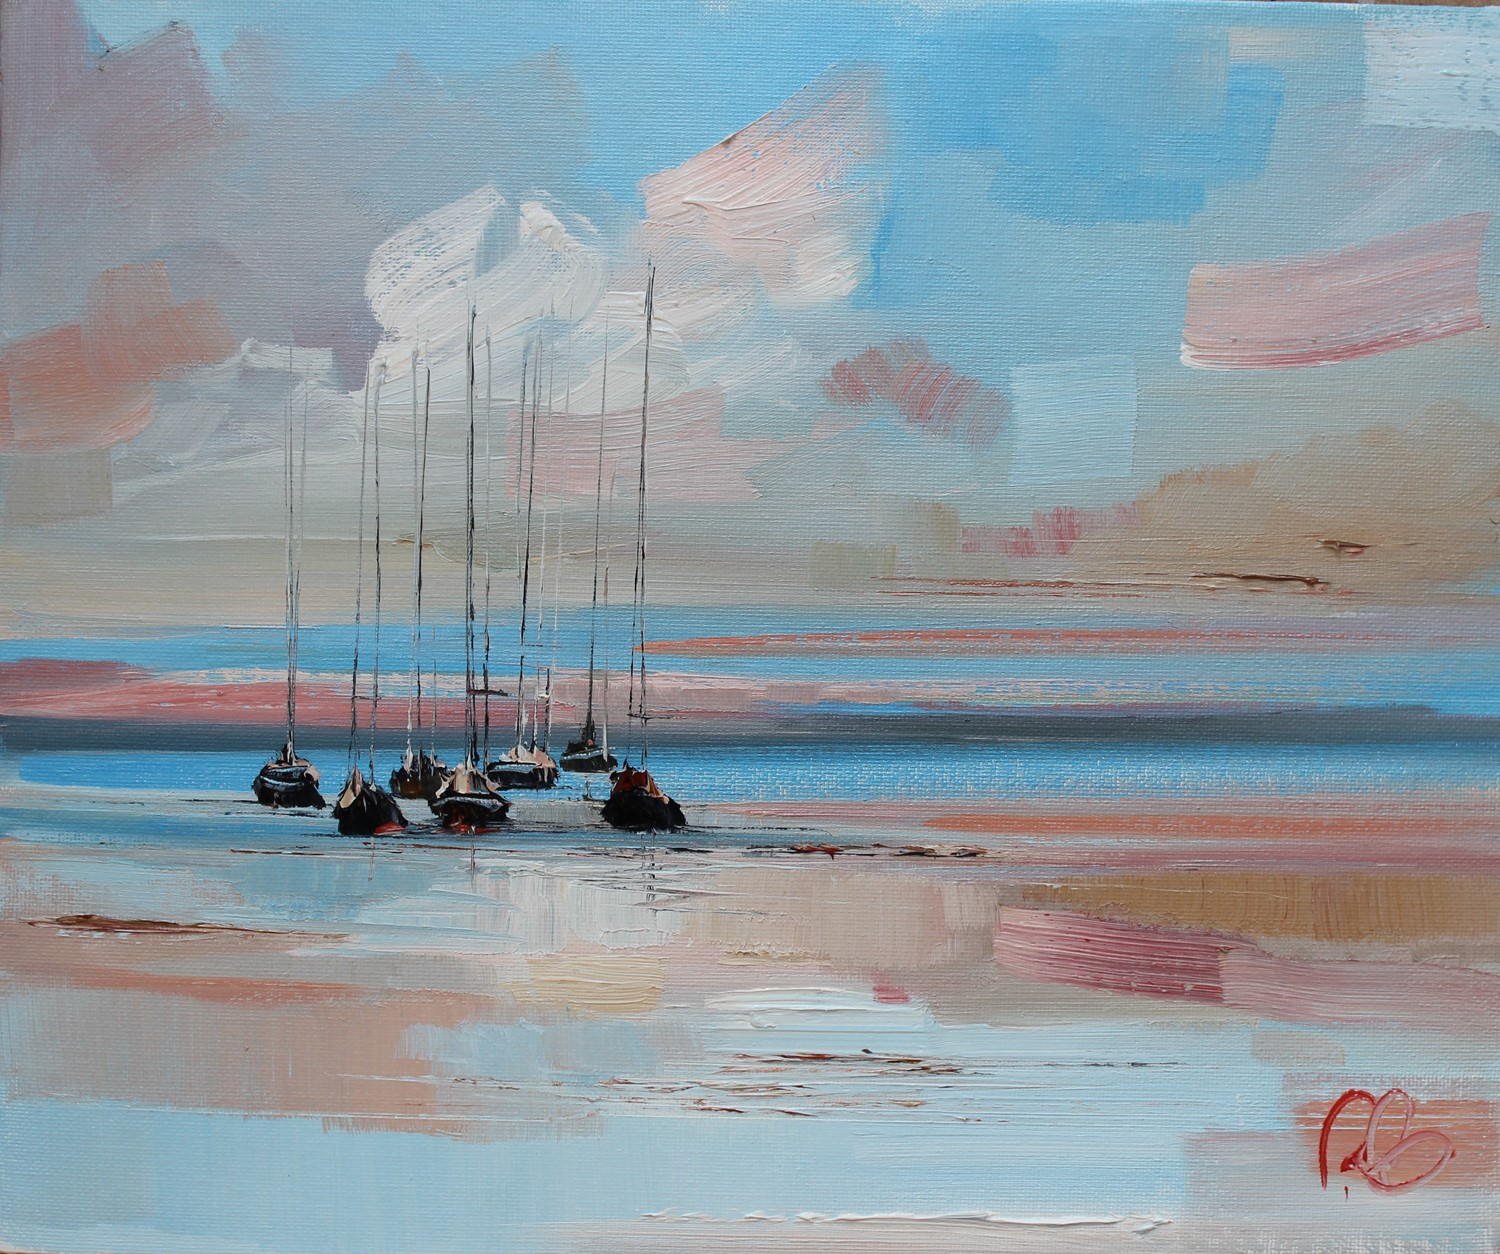 'Yachts after a long Sunset' by artist Rosanne Barr